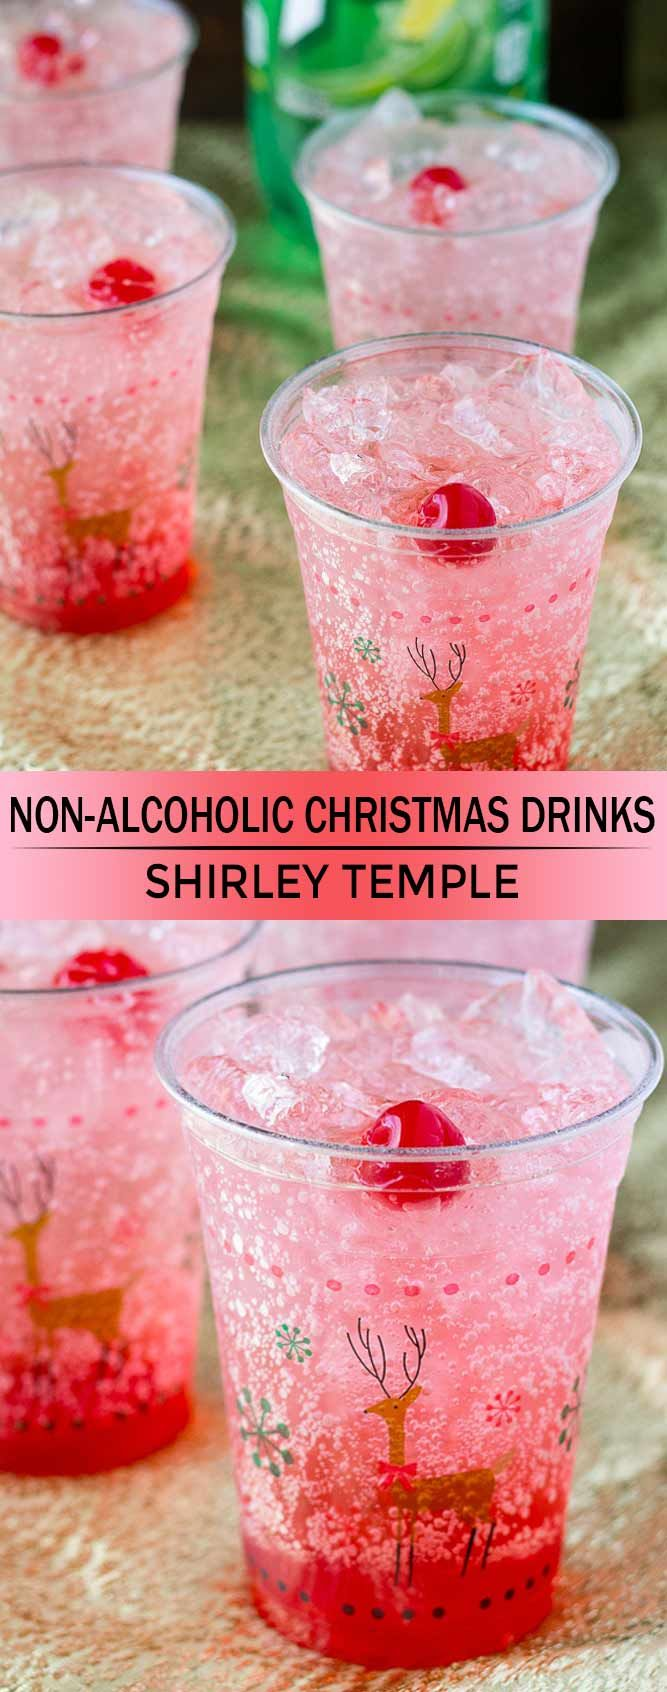 Non-Alcoholic Christmas Drinks That Are Perfect for the Holidays ★ See more: http://glaminati.com/non-alcoholic-christmas-drinks-recipes/